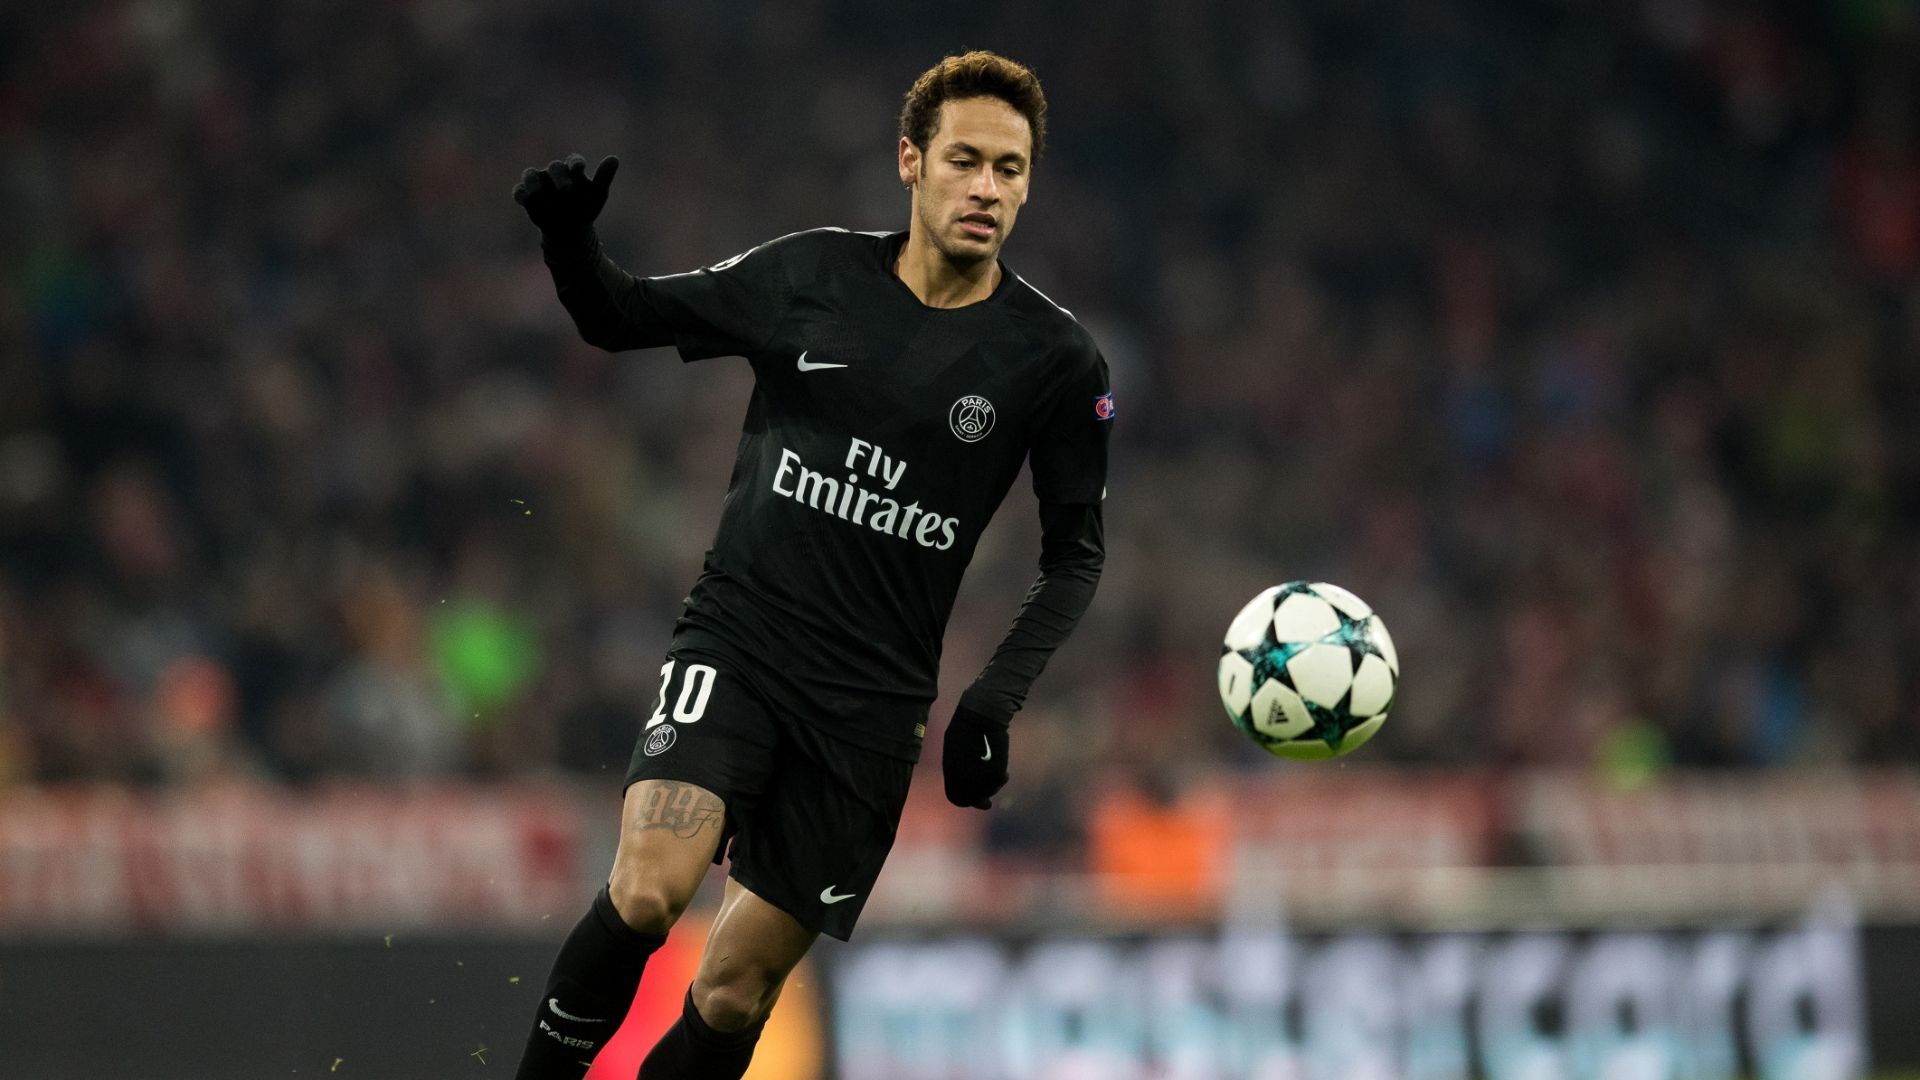 Rajoy doesn't want Neymar at Real Madrid - Ghanasoccernet News